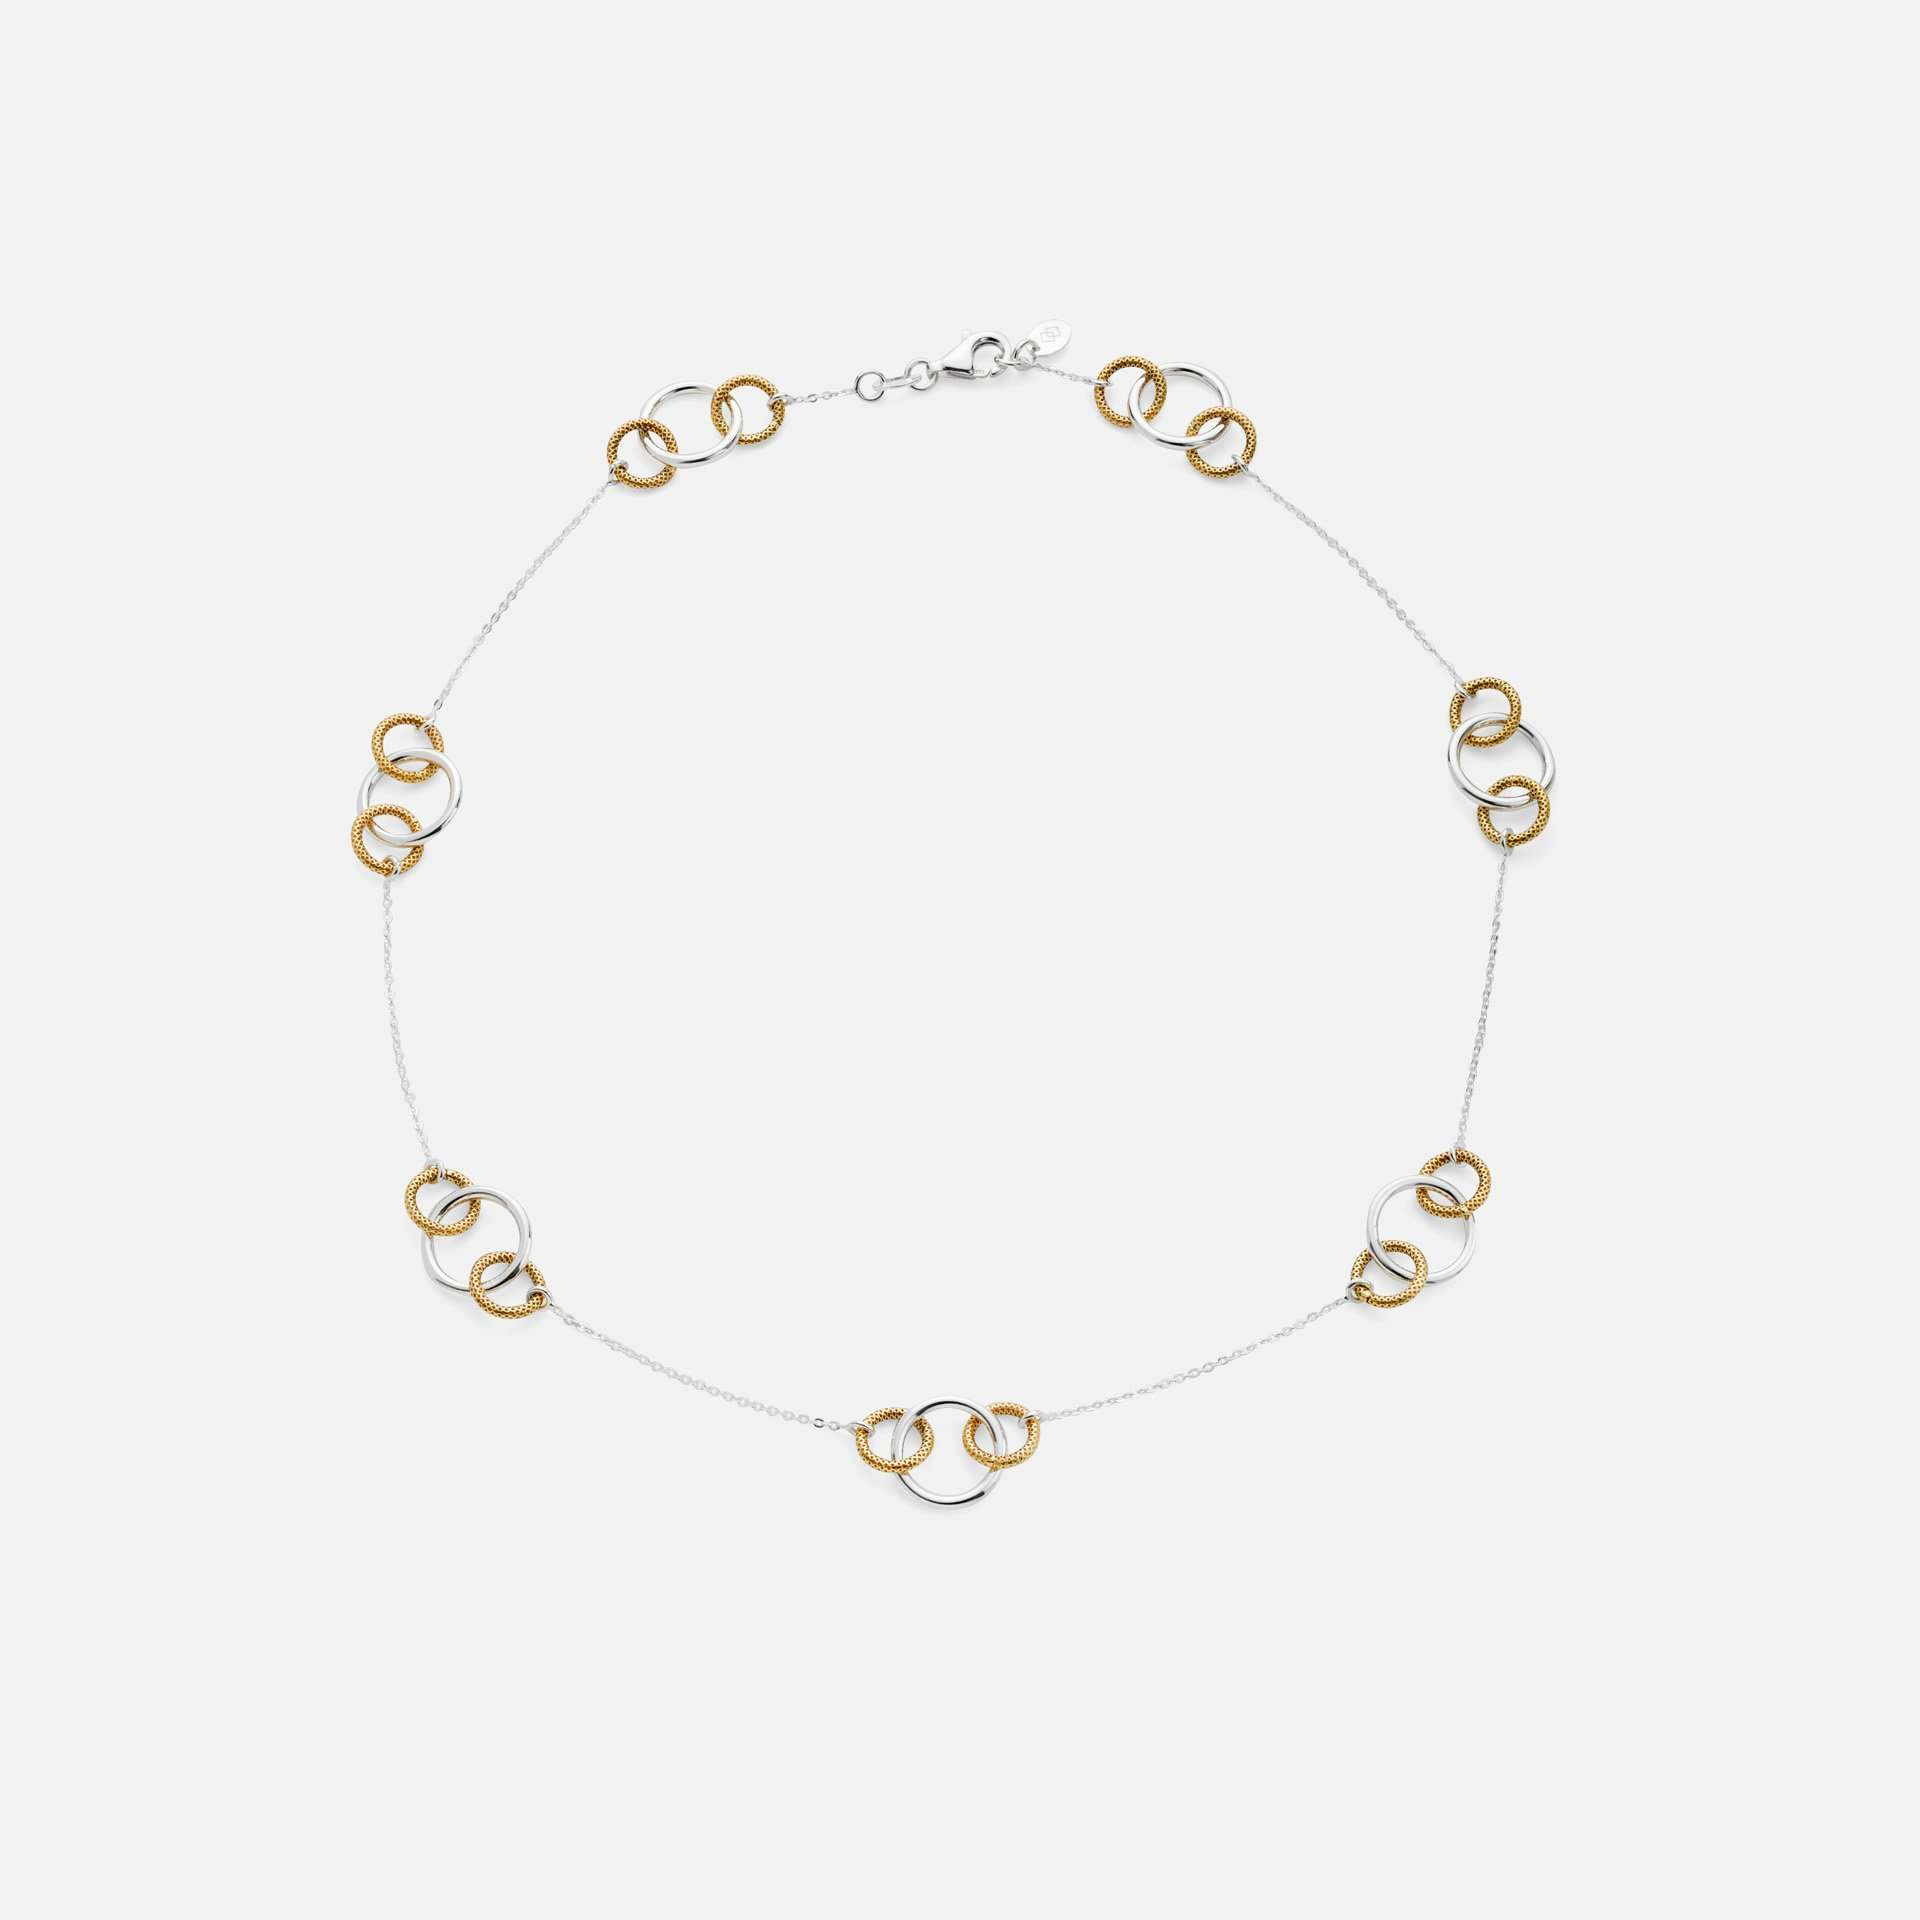 Beauly Rings Necklace Silver and Gold